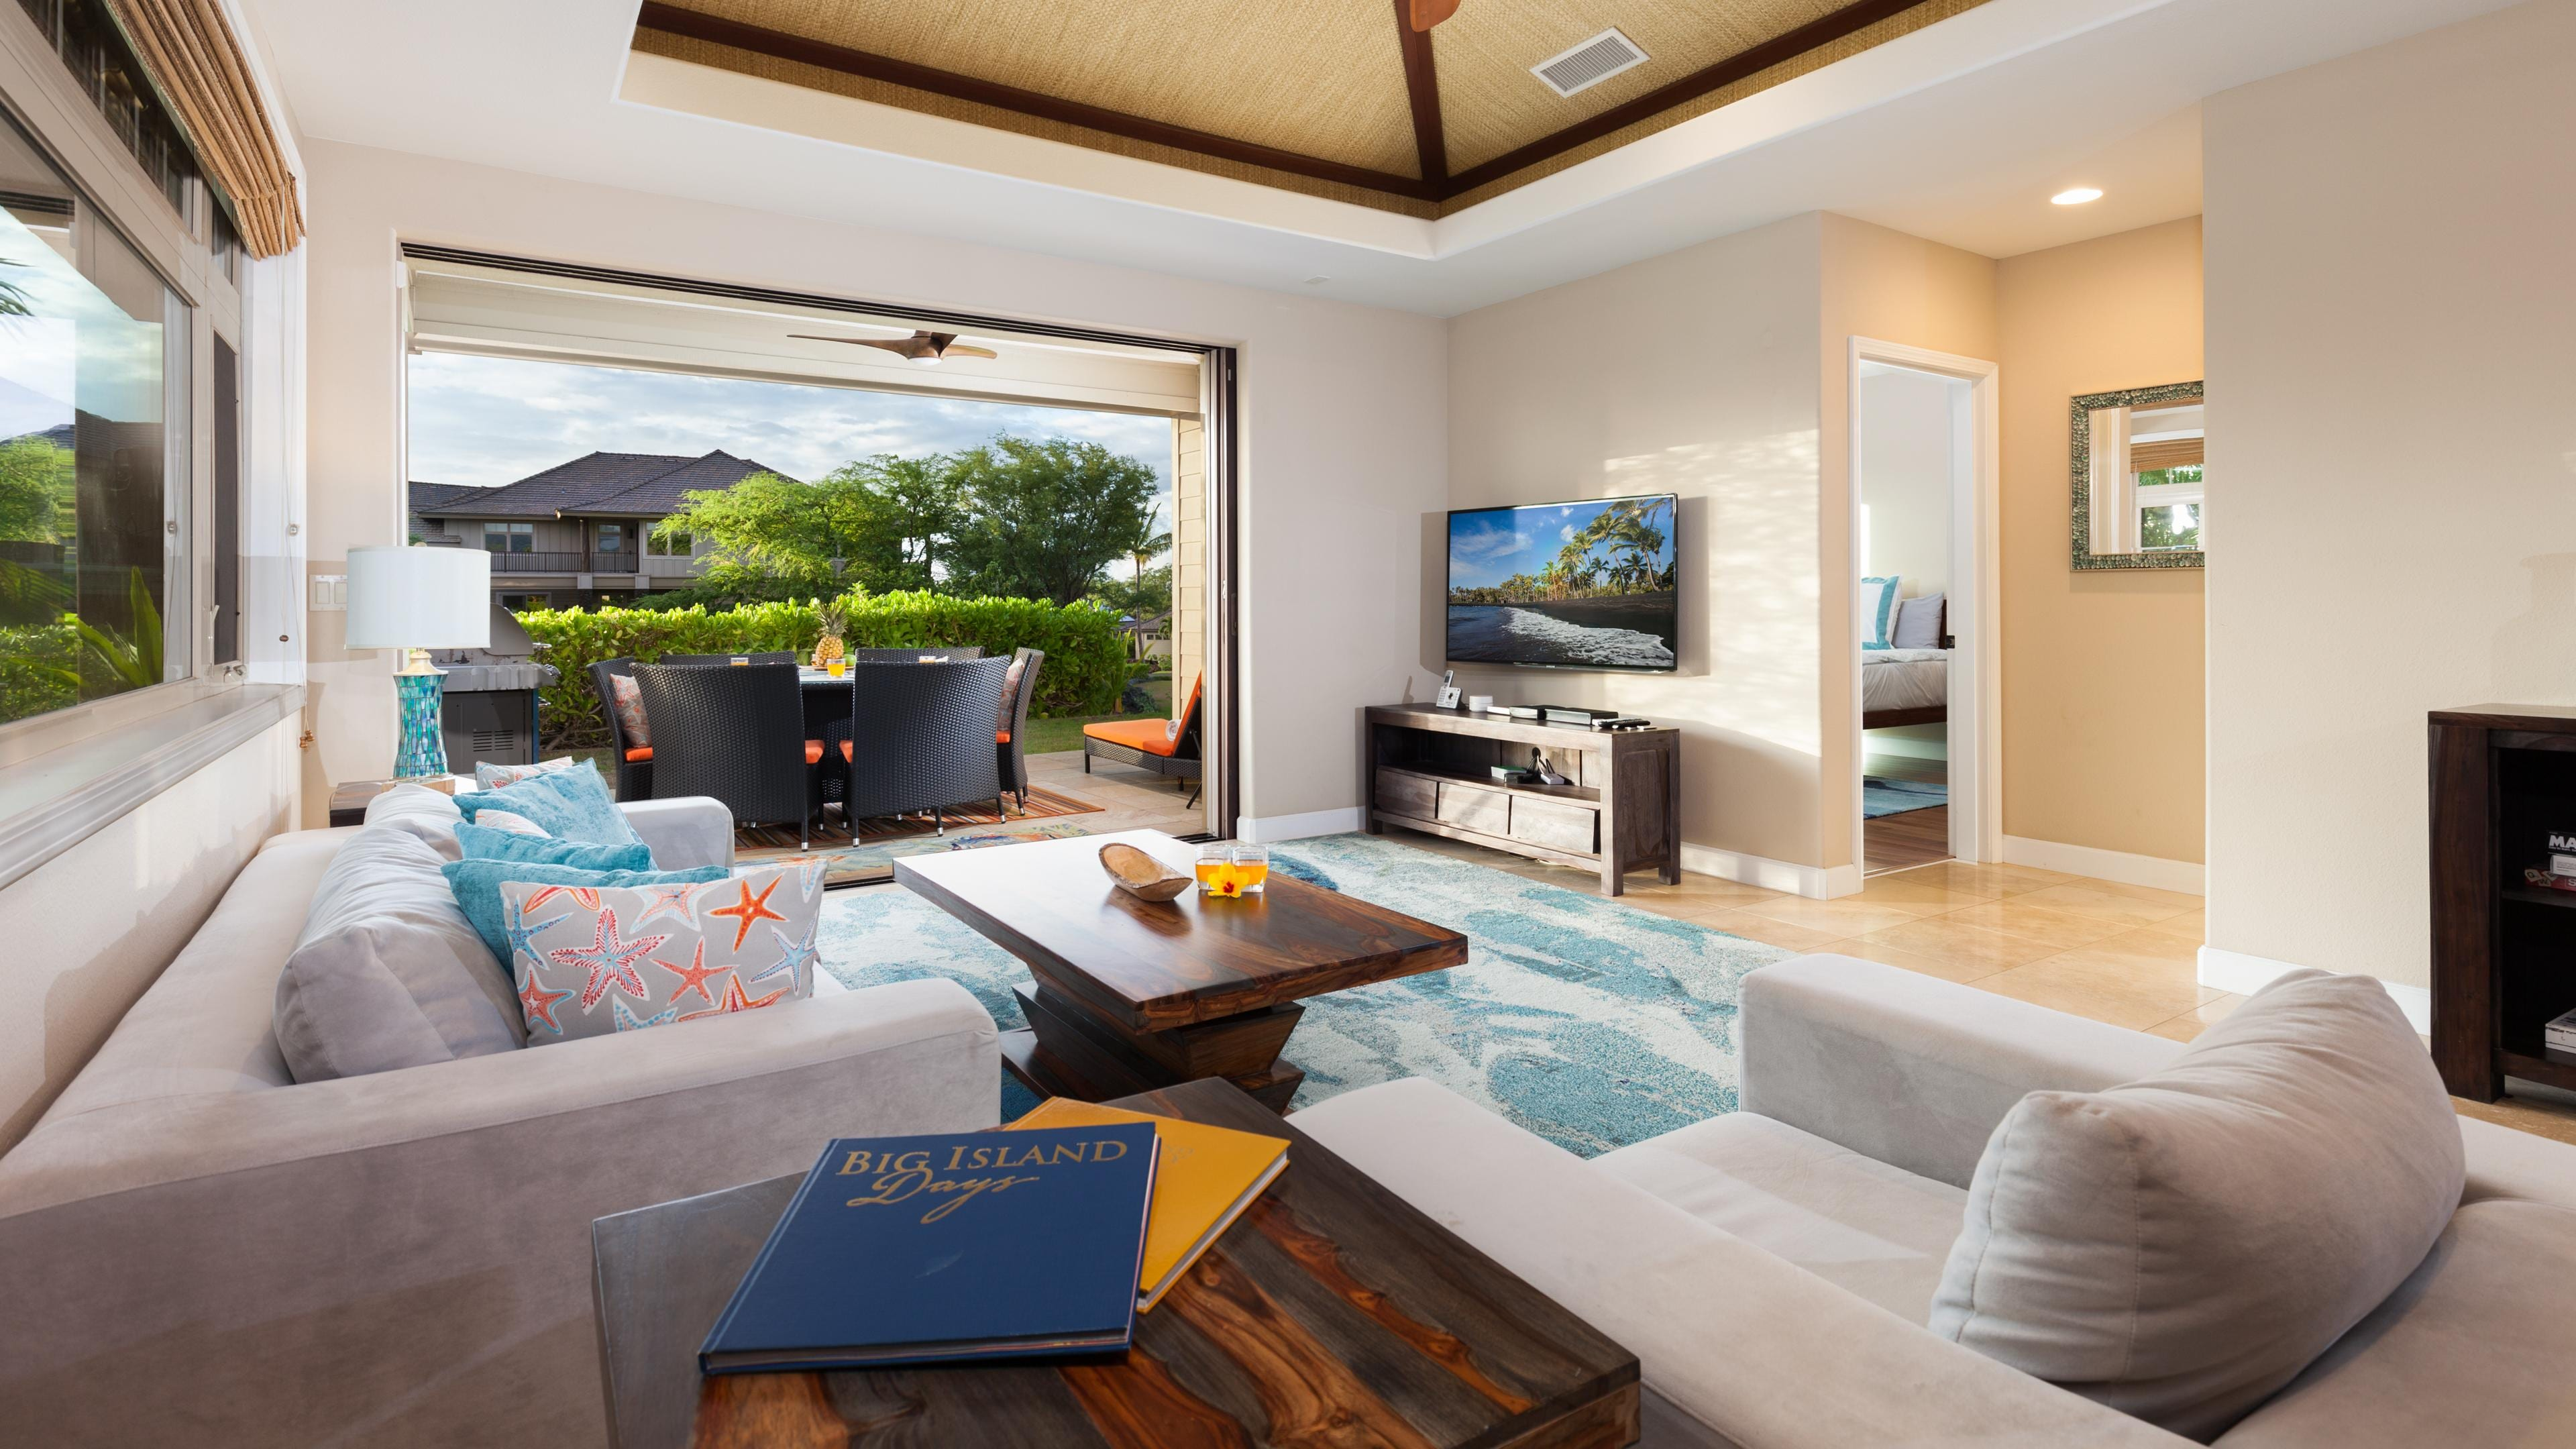 Open concept living area with pocket doors leading to the covered lanai